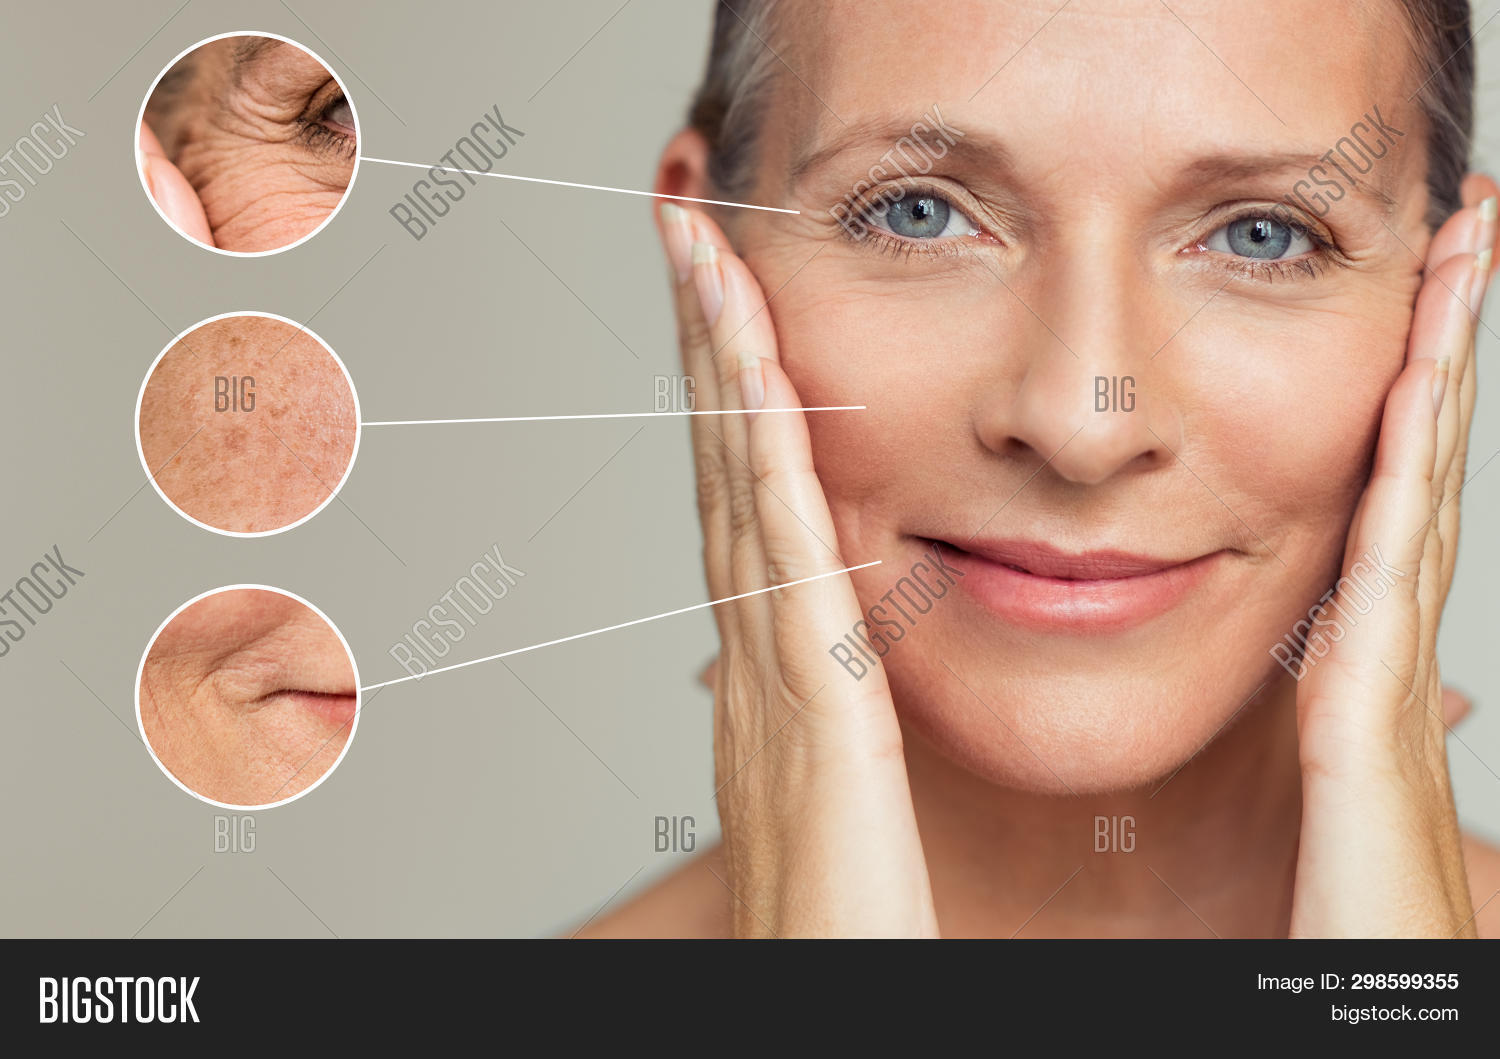 aged,aging,aging process,aging skin,anti aging,anti-aging,background,beautiful,beauty,beauty treatment,beauty woman,care,closeup,cosmetic,detail,eye,face,hand,happy,health care,healthcare,healthy,imperfection,isolated,lifting,line,looking,mark,mature,mid adult woman,middle aged woman,moisturizer,mole,mouth,old,portrait,process,purity,senior,senior woman,skin,skin care,skincare,smiling,therapy,treatment,wellness,wrinkle,wrinkled face,wrinkles